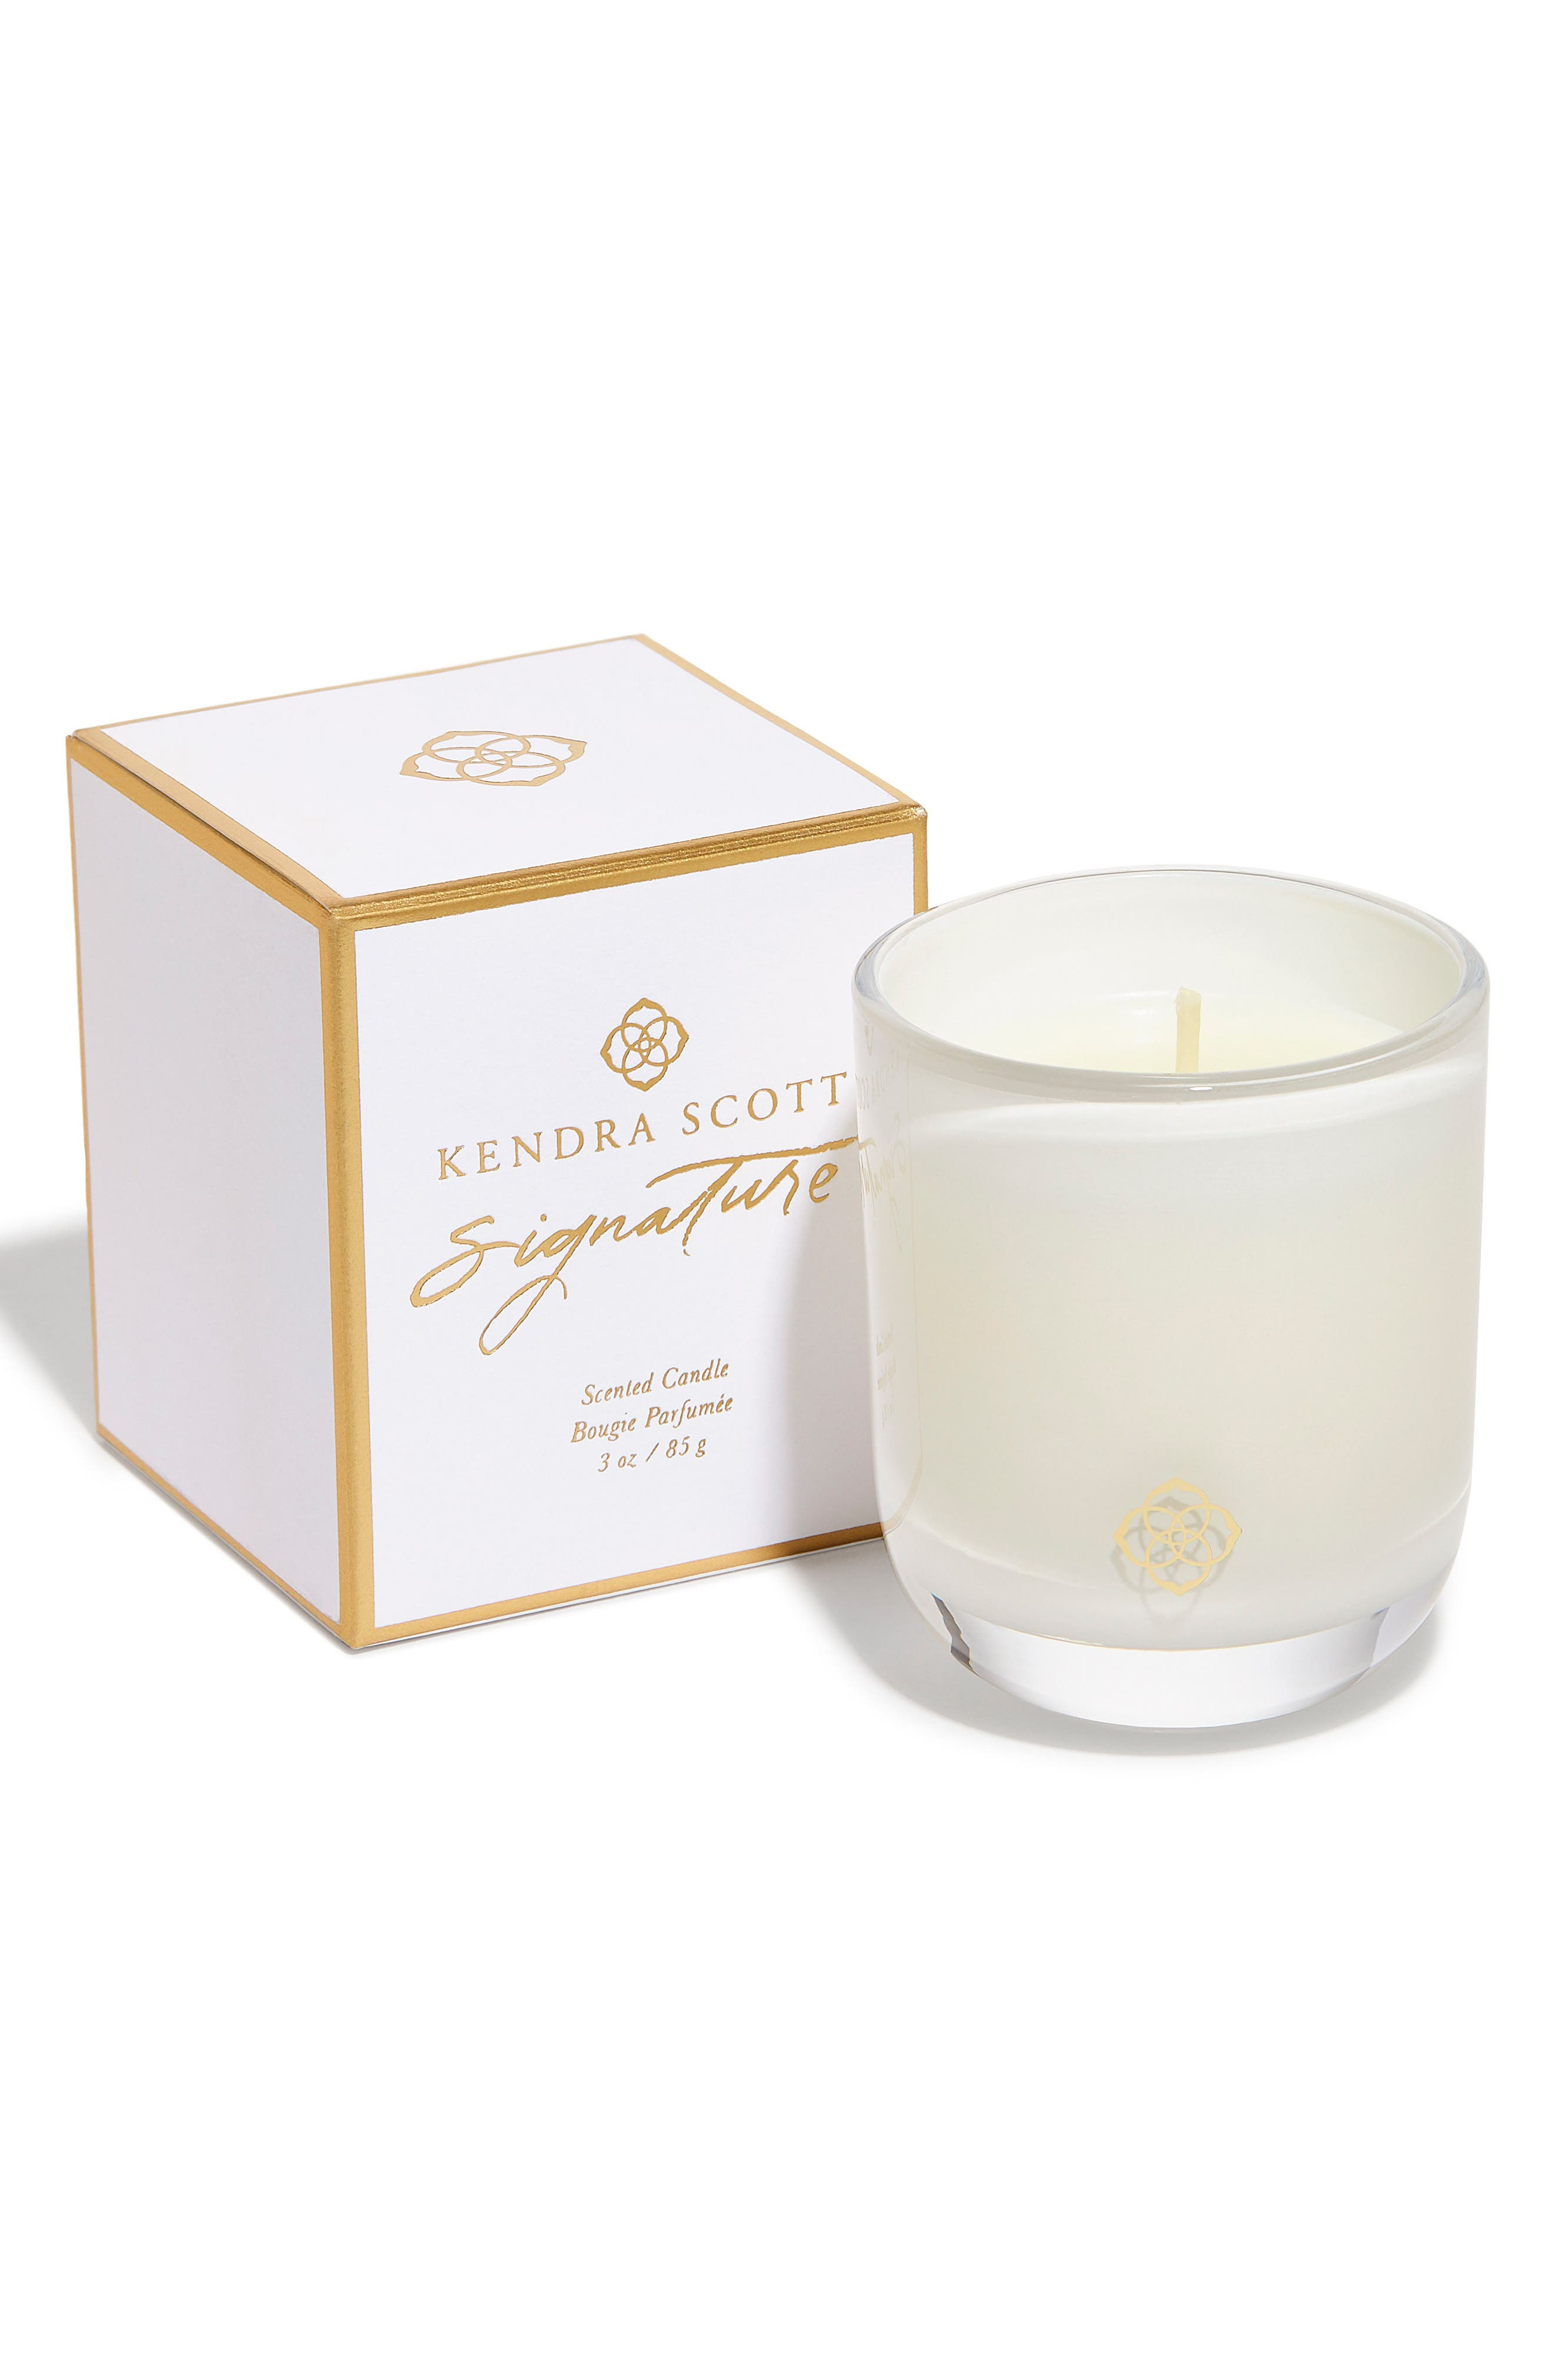 Main Image - Kendra Scott Scented Votive Candle